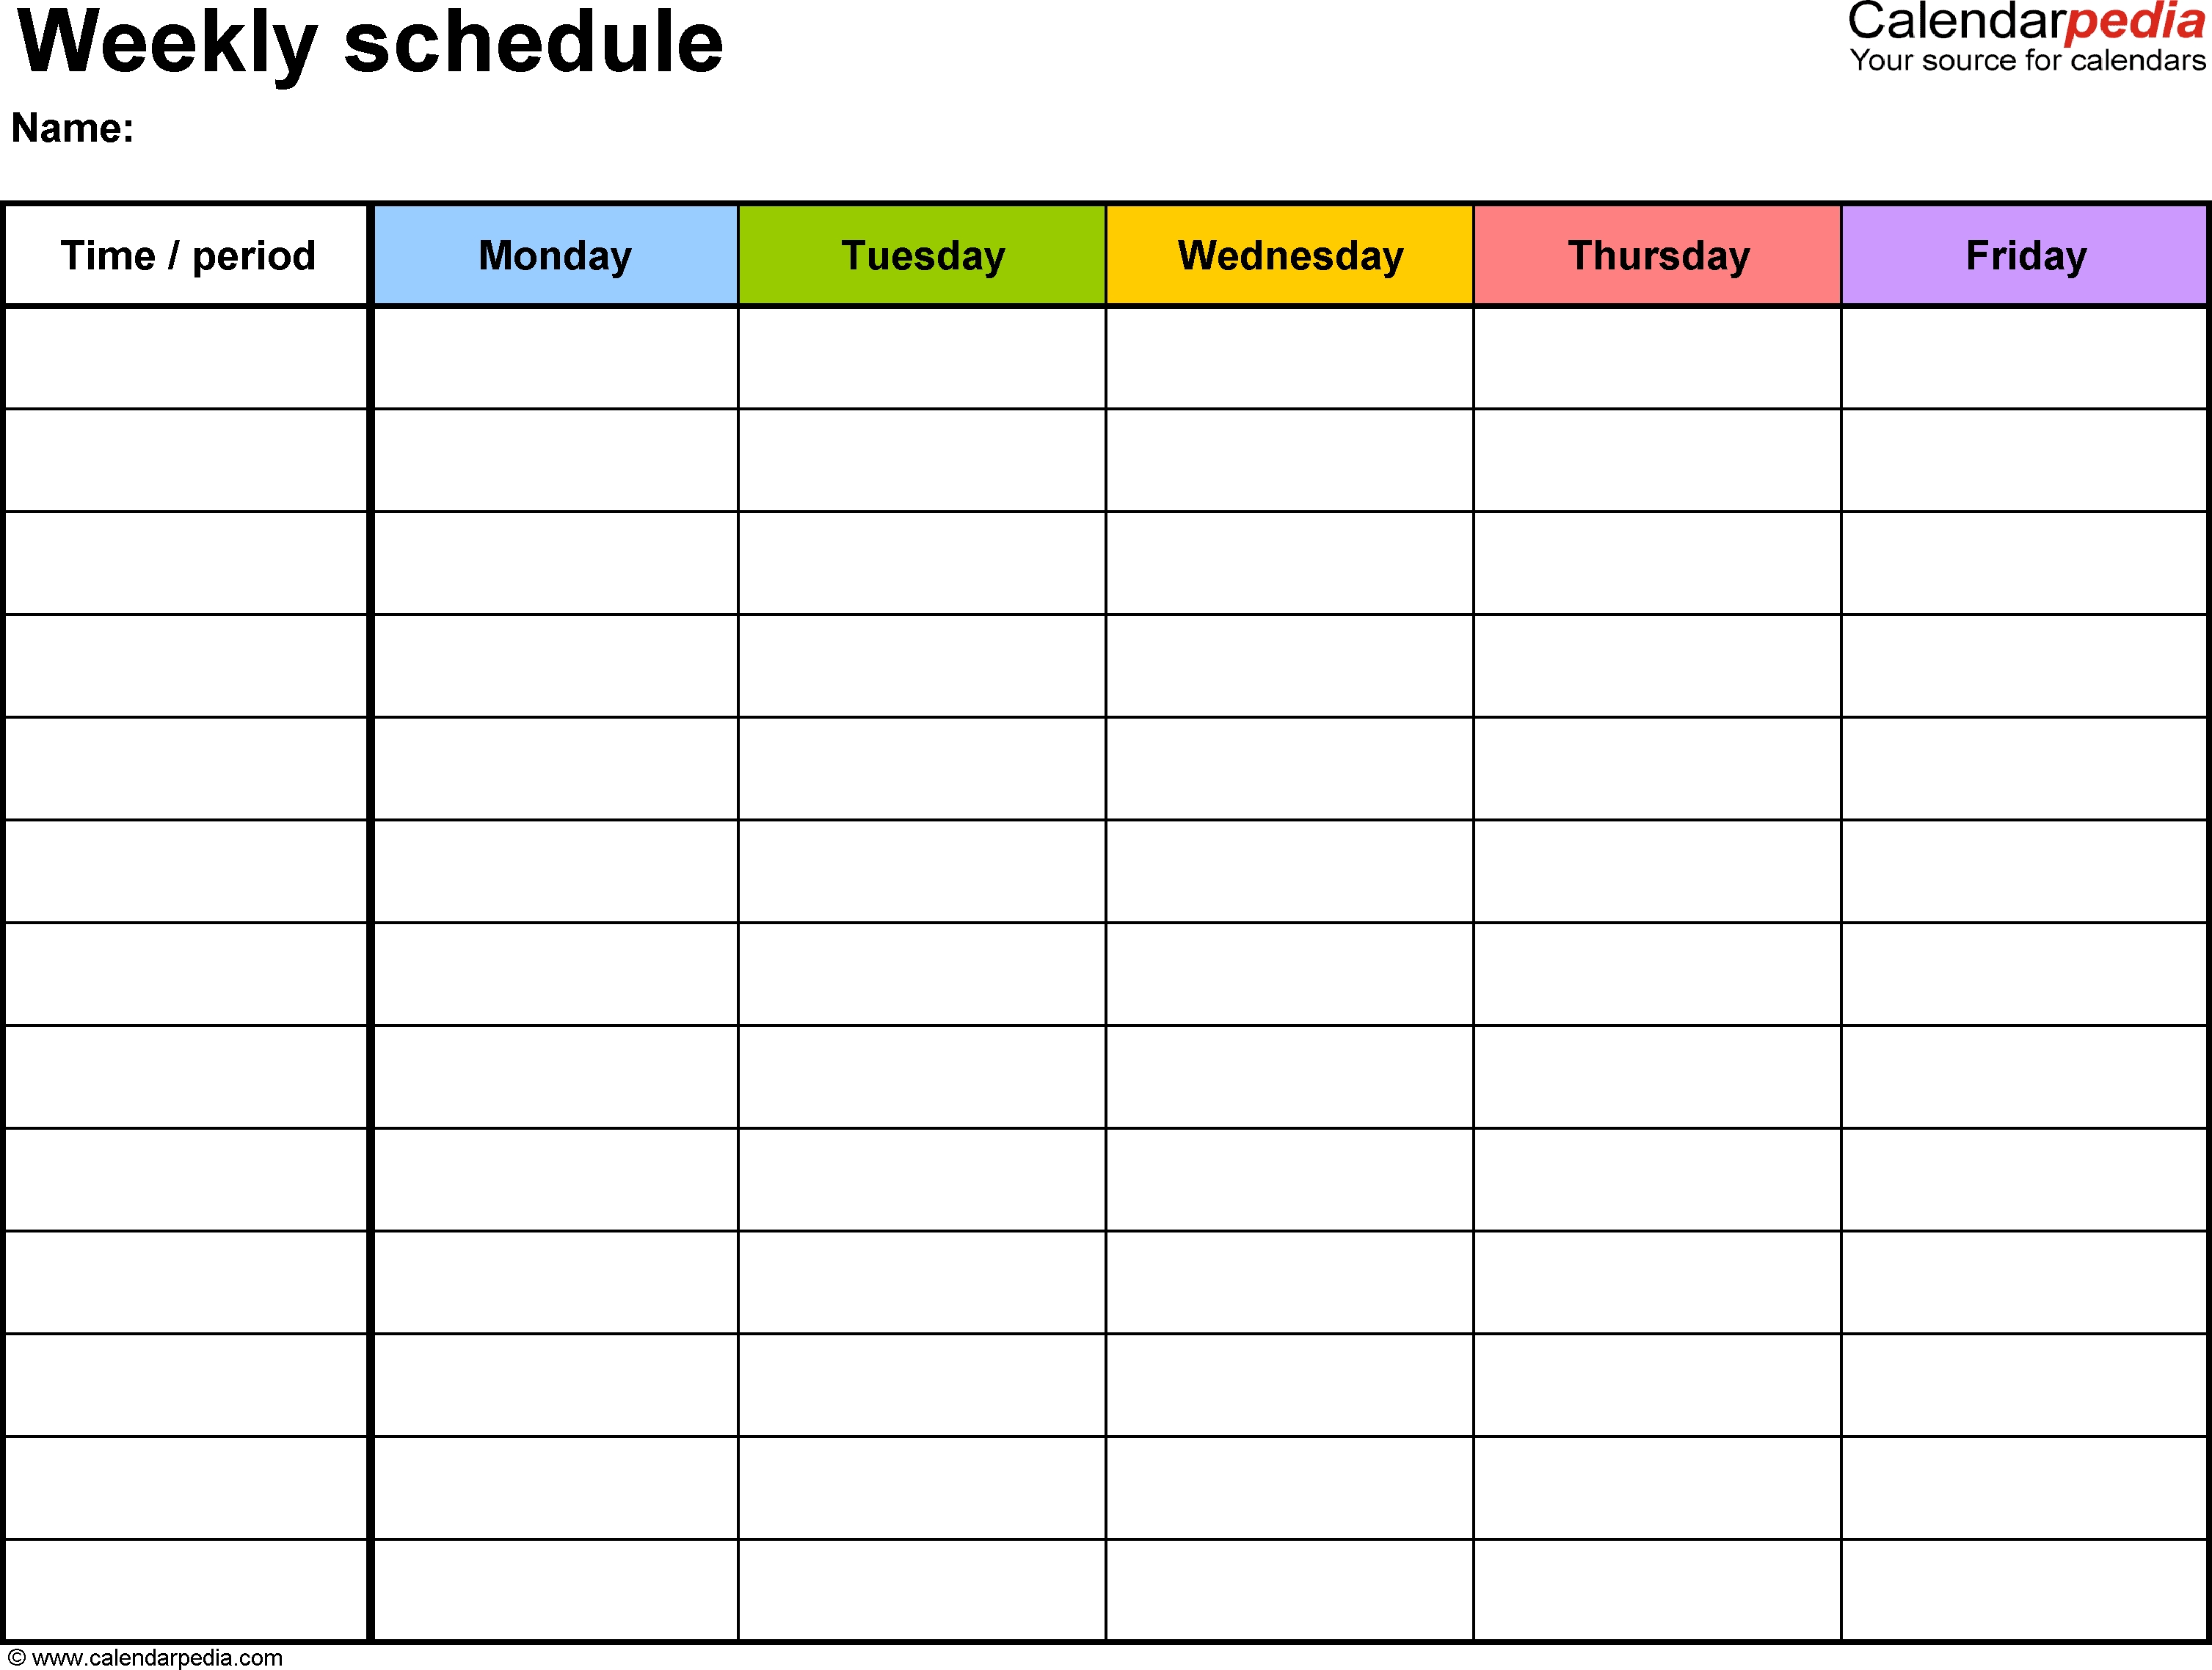 Free Weekly Schedule Templates For Word - 18 Templates-Monday Friday Calendar Template